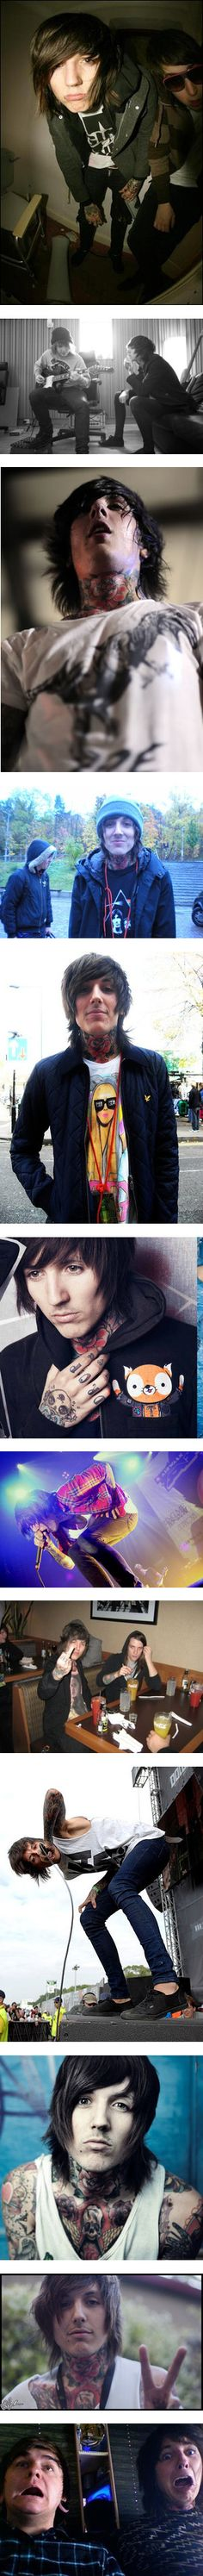 """Oliver Sykes 2!"" by asyousleep ❤ liked on Polyvore"